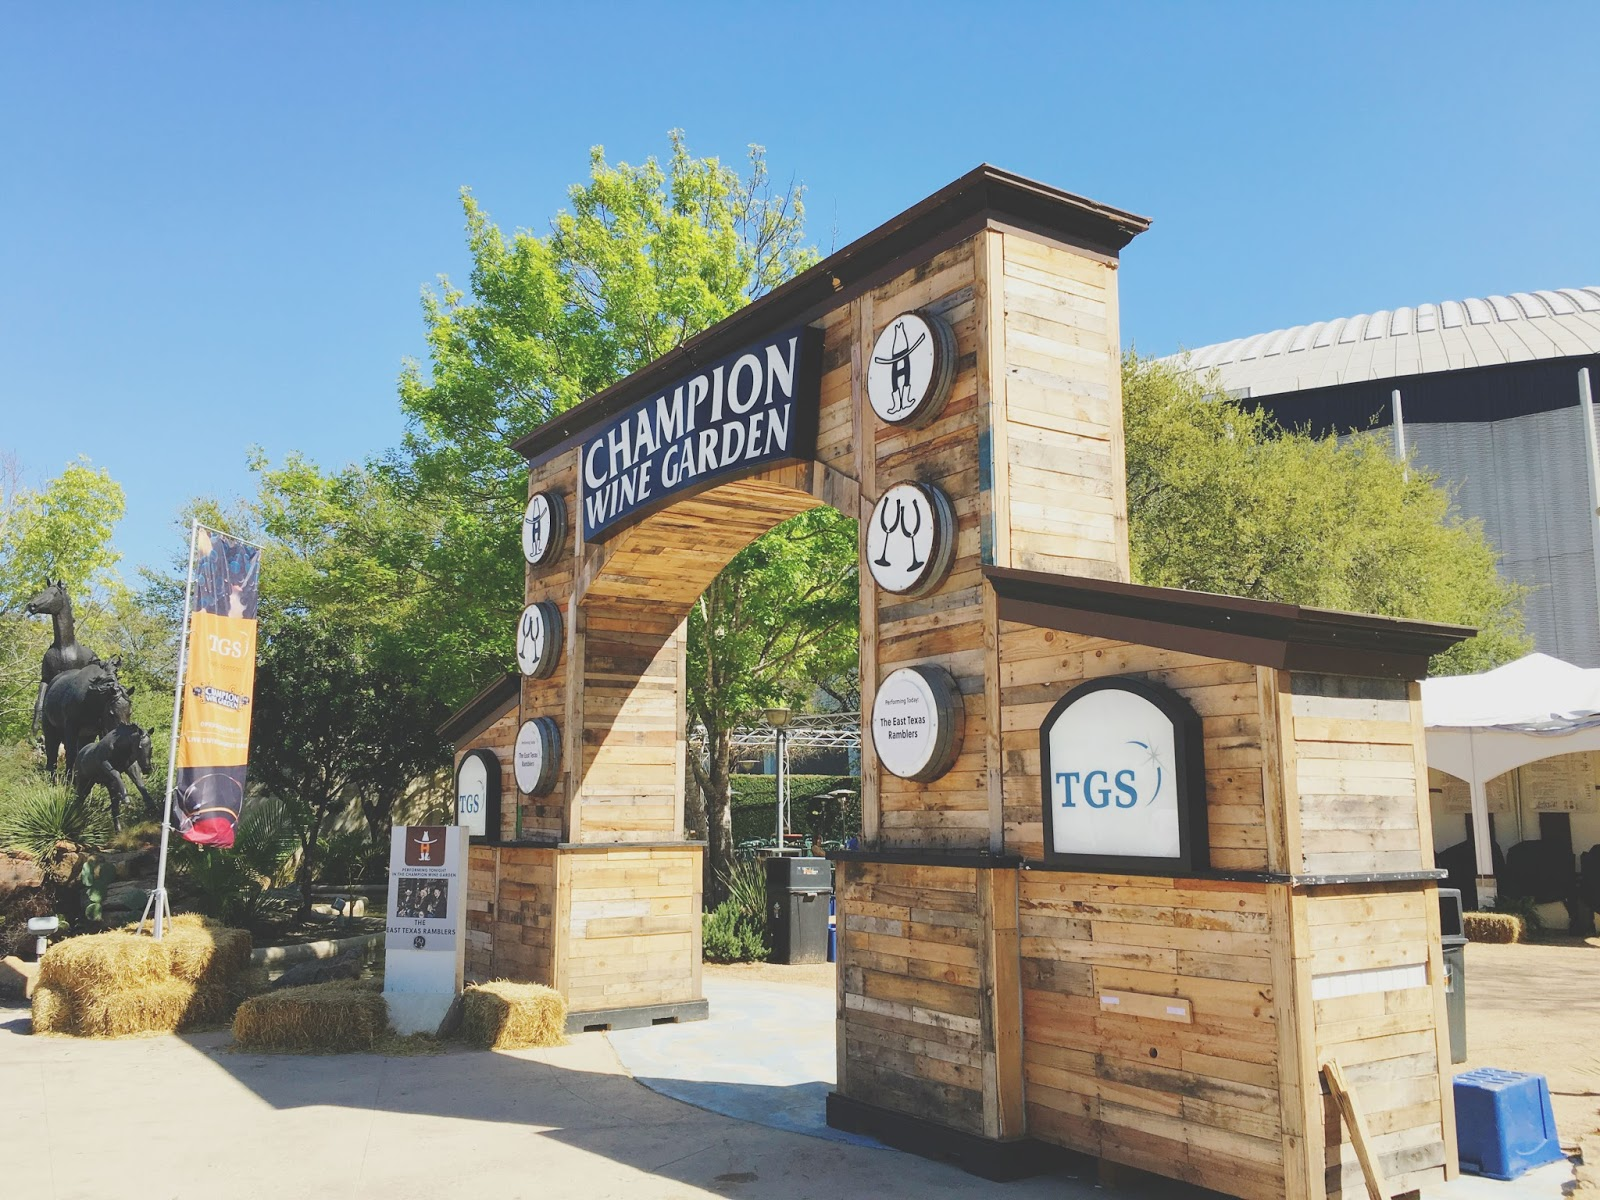 2016 Houston Livestock Show and Rodeo Champion Wine Garden